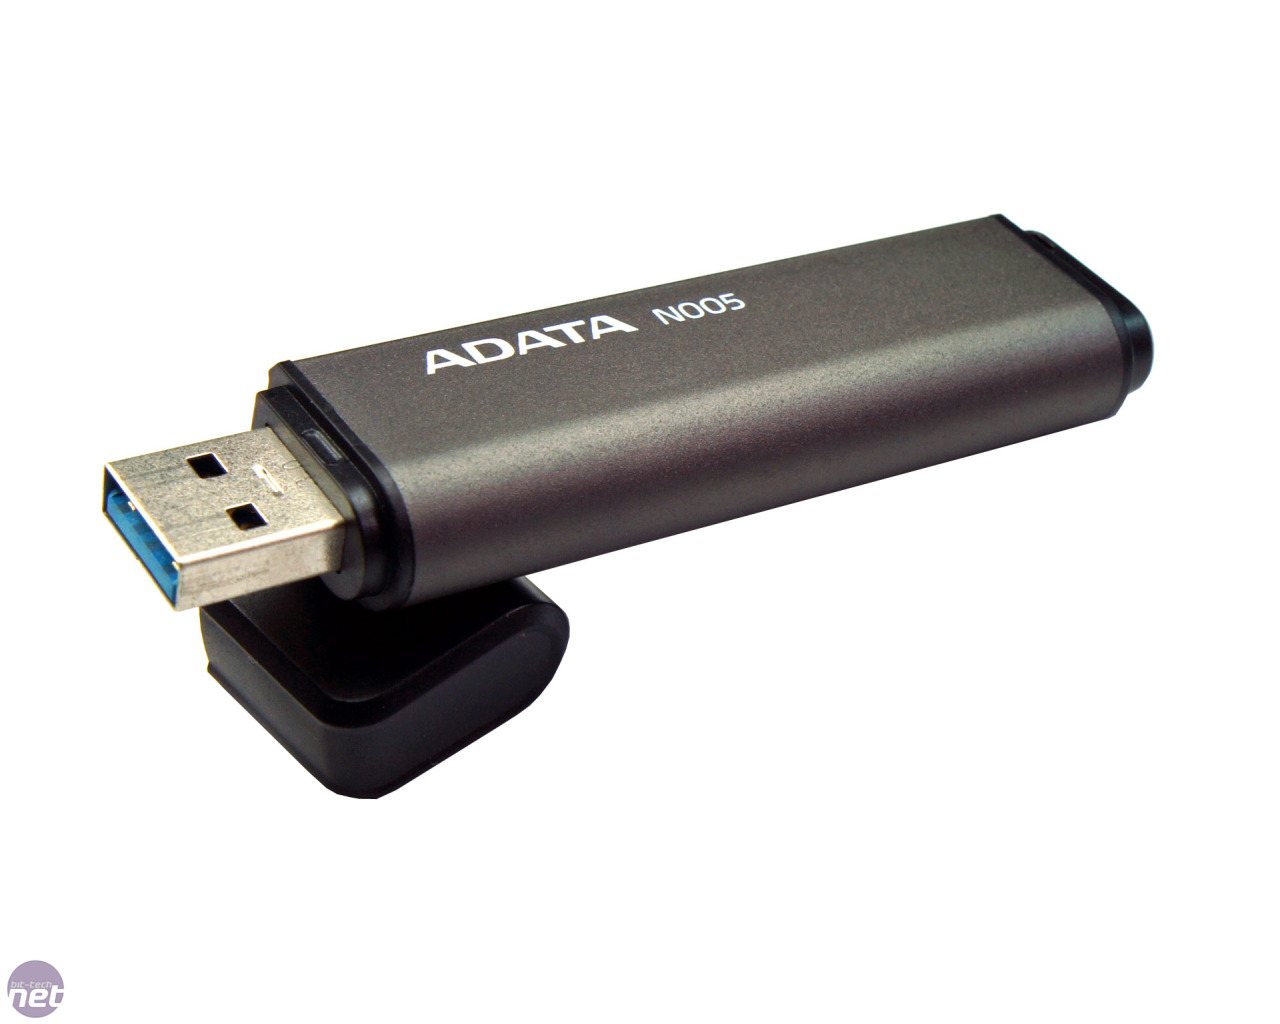 Kingston usb 3 flash drives adata n005 16gb usb 3 flash drive review